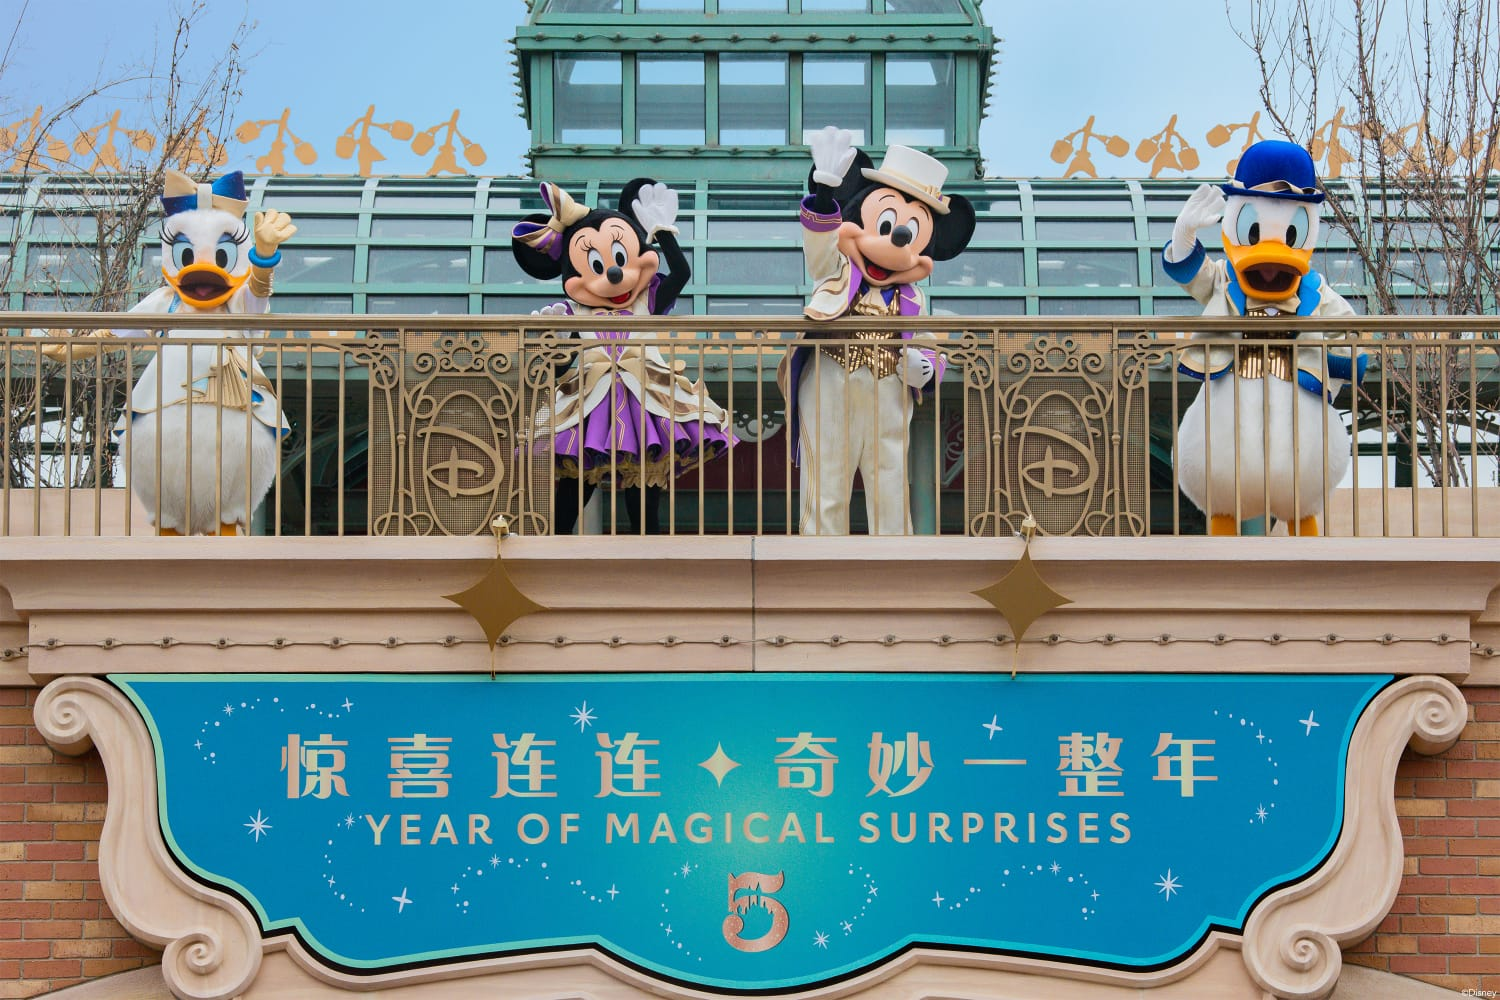 Shanghai Disney Resort - 5th Anniversary - Welcome by Donald Mickey Daisy and Minnie